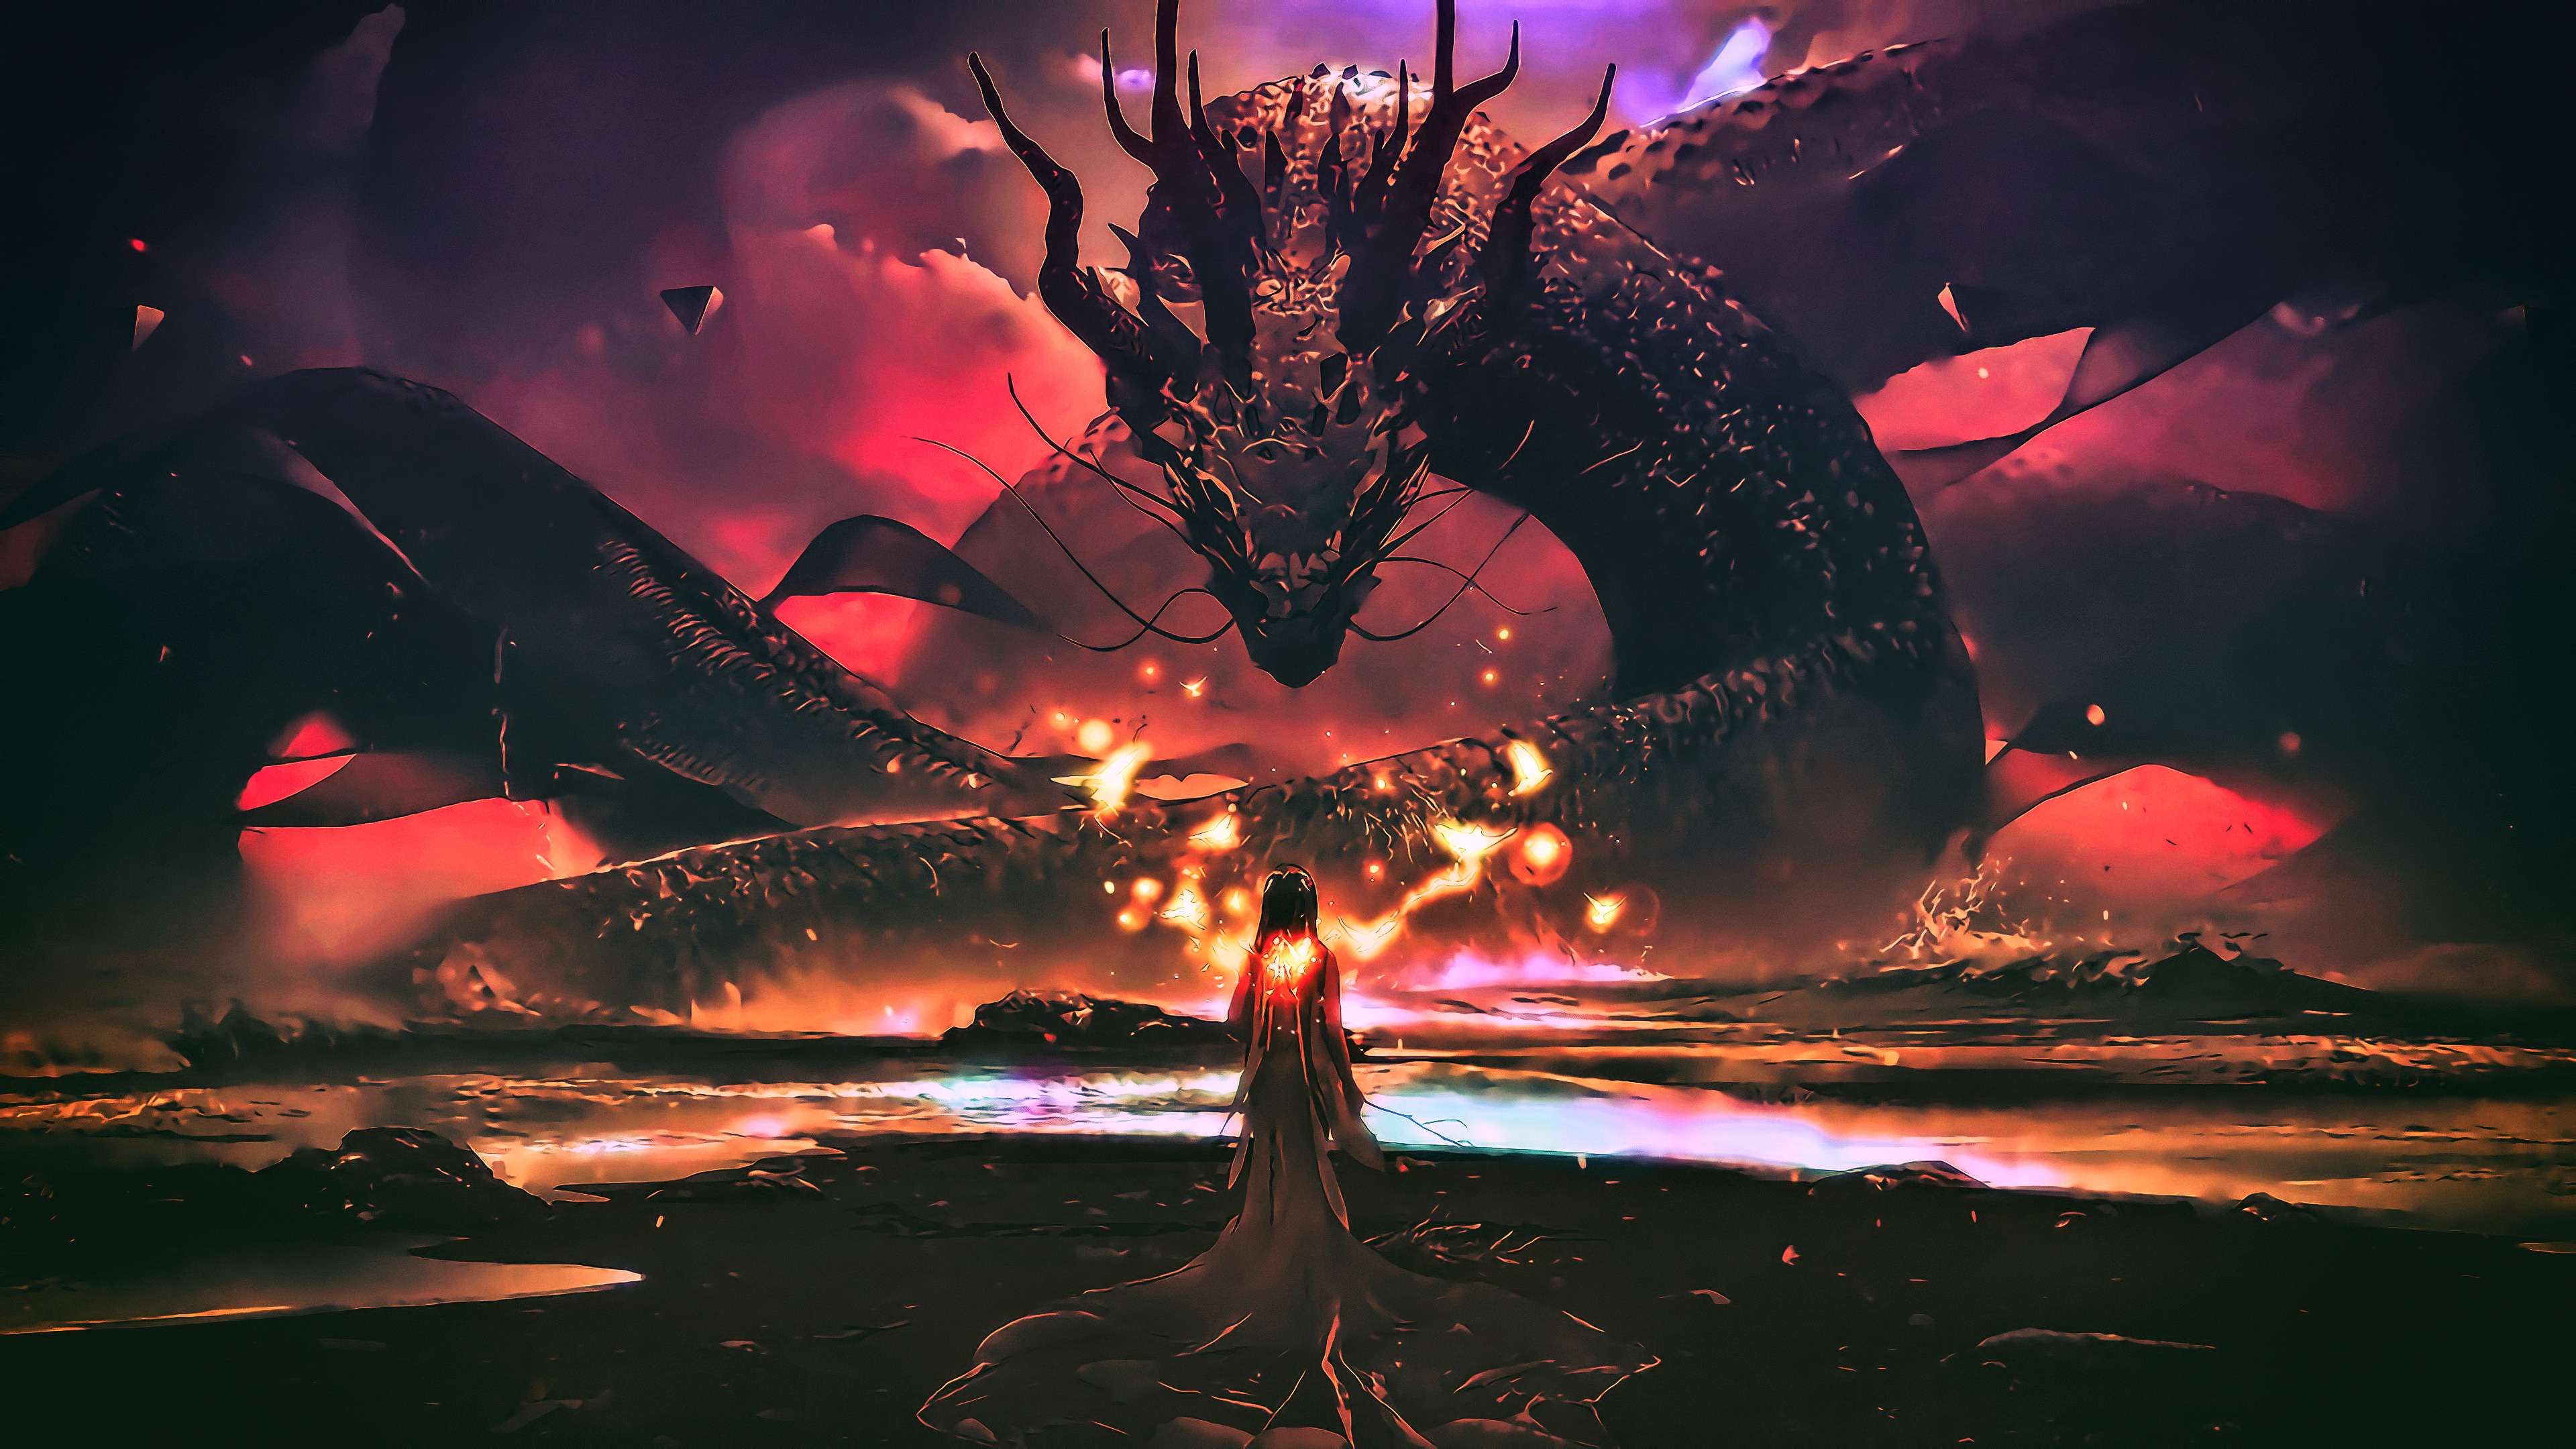 dragon goddess artwork fantasy 4k 1540754282 - Dragon Goddess Artwork Fantasy 4k - hd-wallpapers, fantasy wallpapers, dragon wallpapers, digital art wallpapers, artwork wallpapers, artist wallpapers, 4k-wallpapers